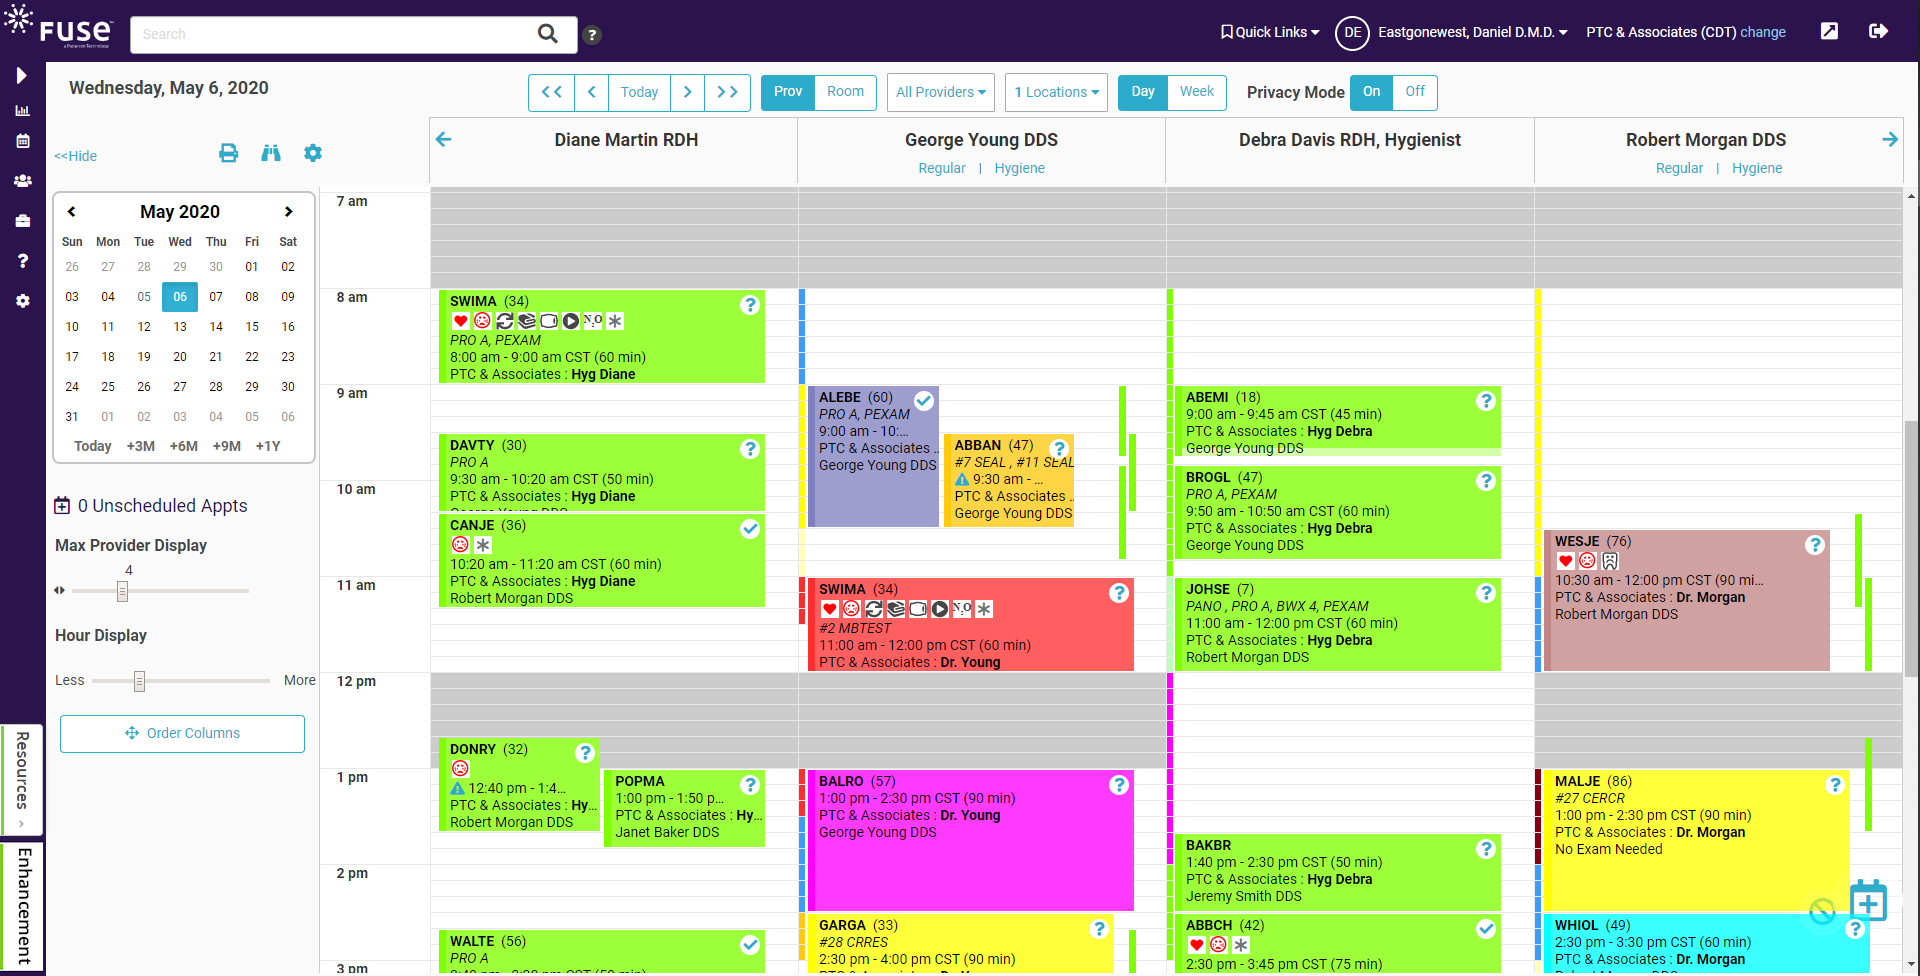 Easily manage tasks from scheduling to billing to insurance and everything in between with Fuse.